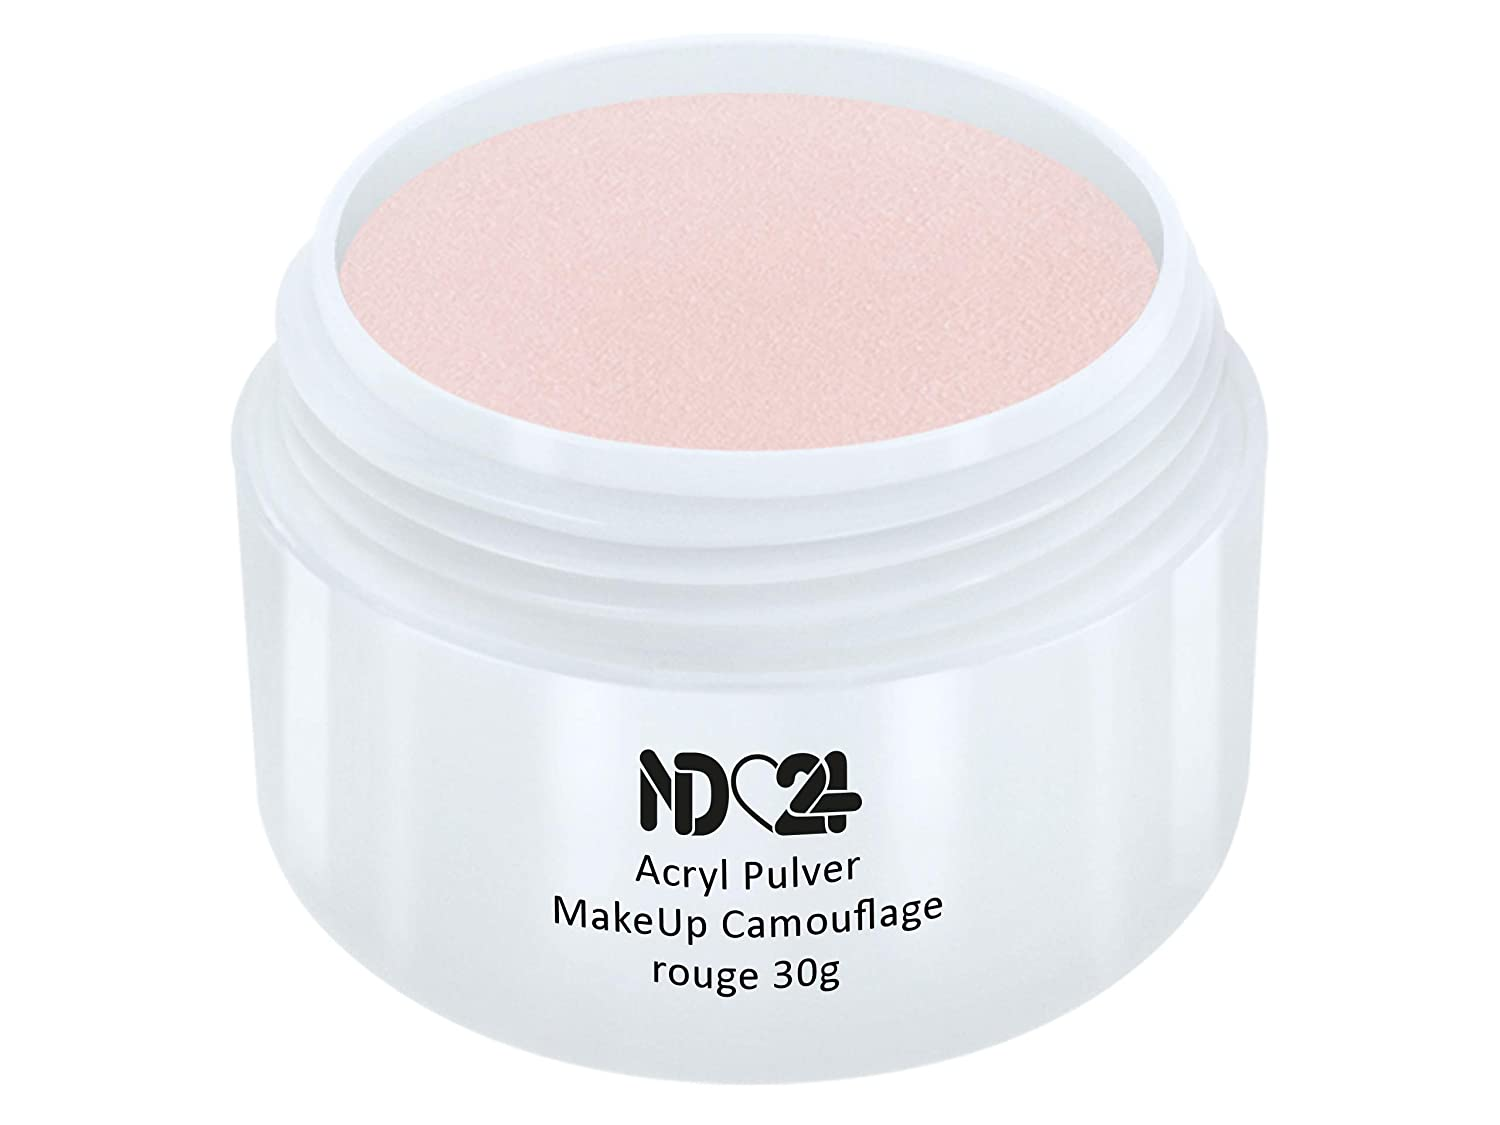 Acryl Pulver MakeUp Camouflage rouge 30g - nd24 BESTSELLER - Feinstes Acryl-Puder Acryl-Pulver Acryl-Powder - STUDIO QUALITÄT